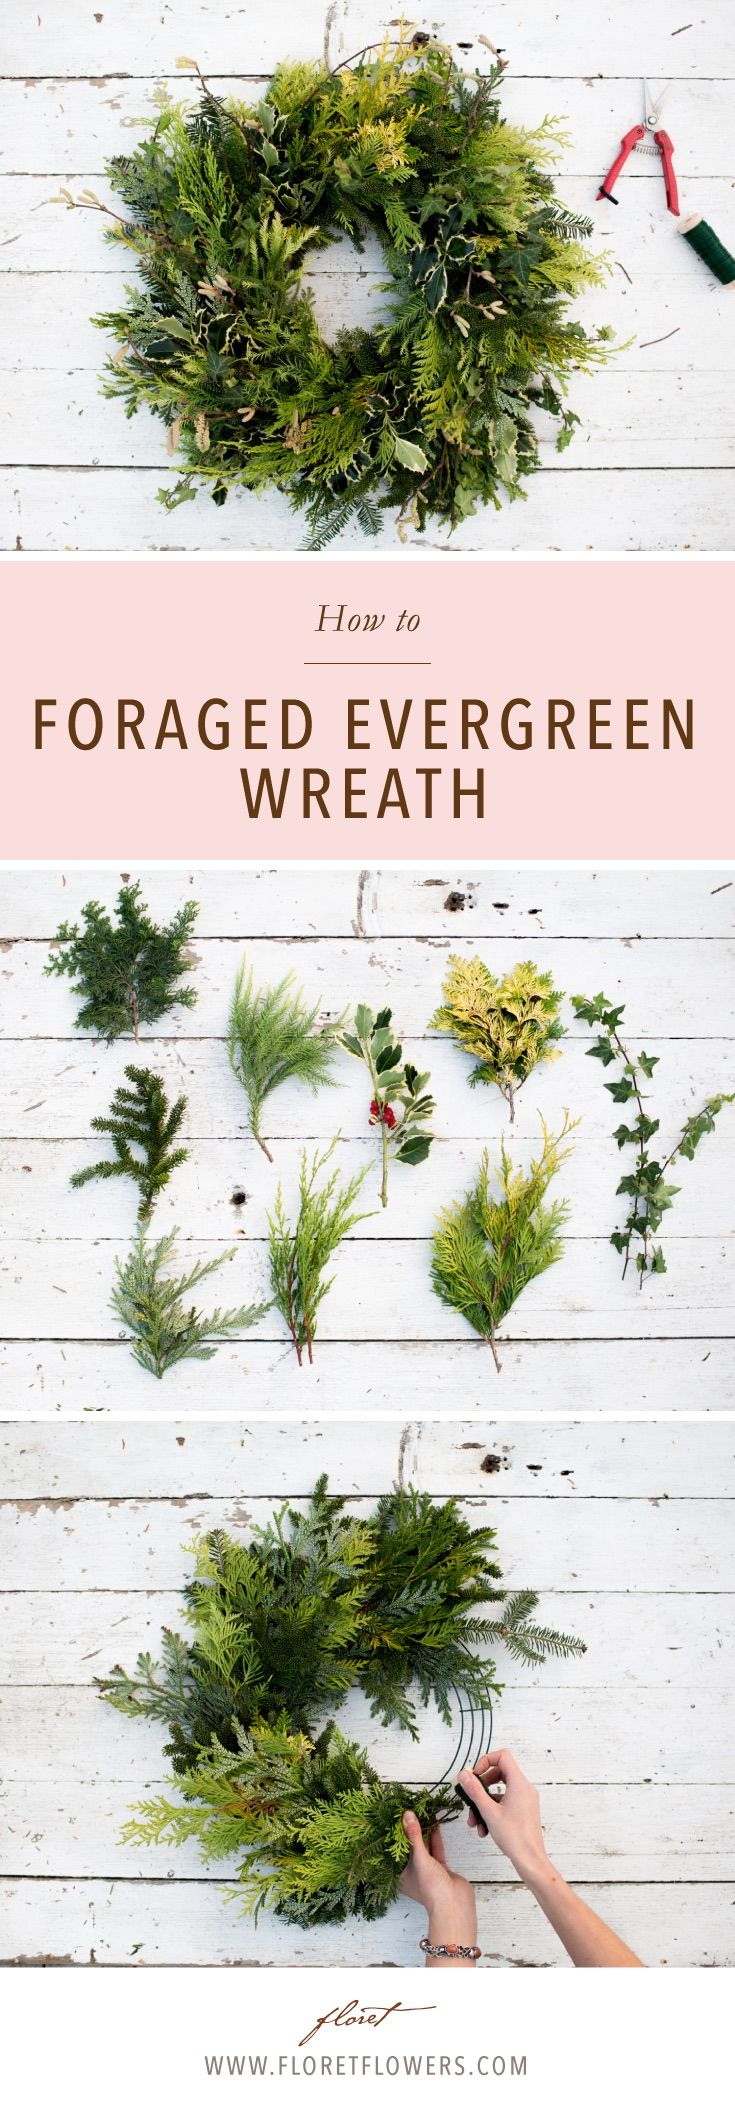 One of the most rewarding things to do during the early days of winter is to collect evergreen branches and make beautiful wreaths. These festive creations are inexpensive, easy to assemble, and make the perfect holiday hostess gifts or winter decoration.